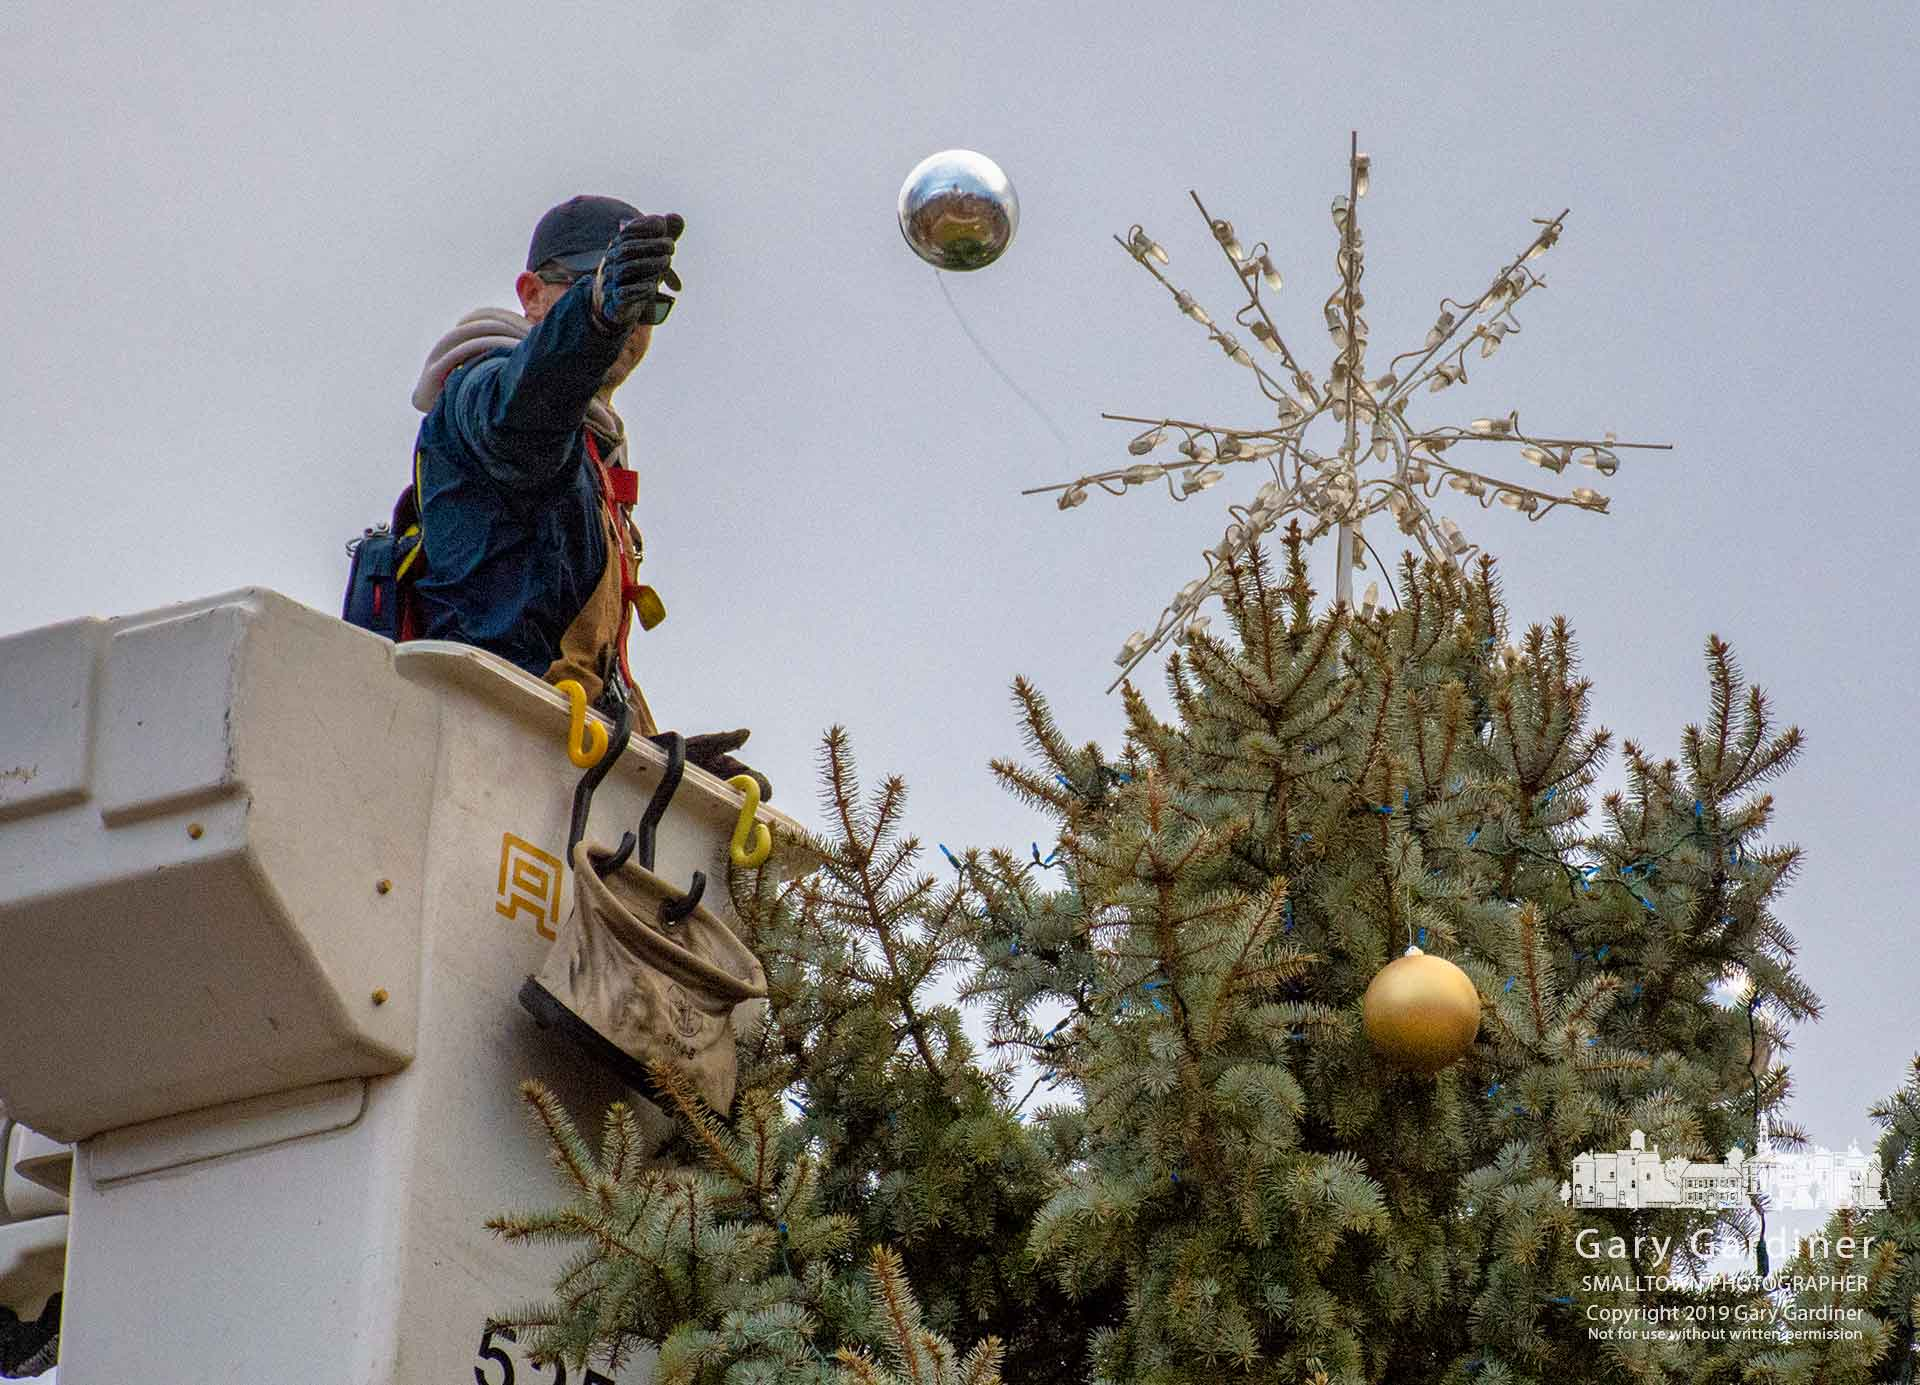 A city electric worker tosses an ornament to another worker on the ground as the holiday tree in front of city hall is removed at the end of the Christmas season. My Final Photo for Jan. 7, 2019.